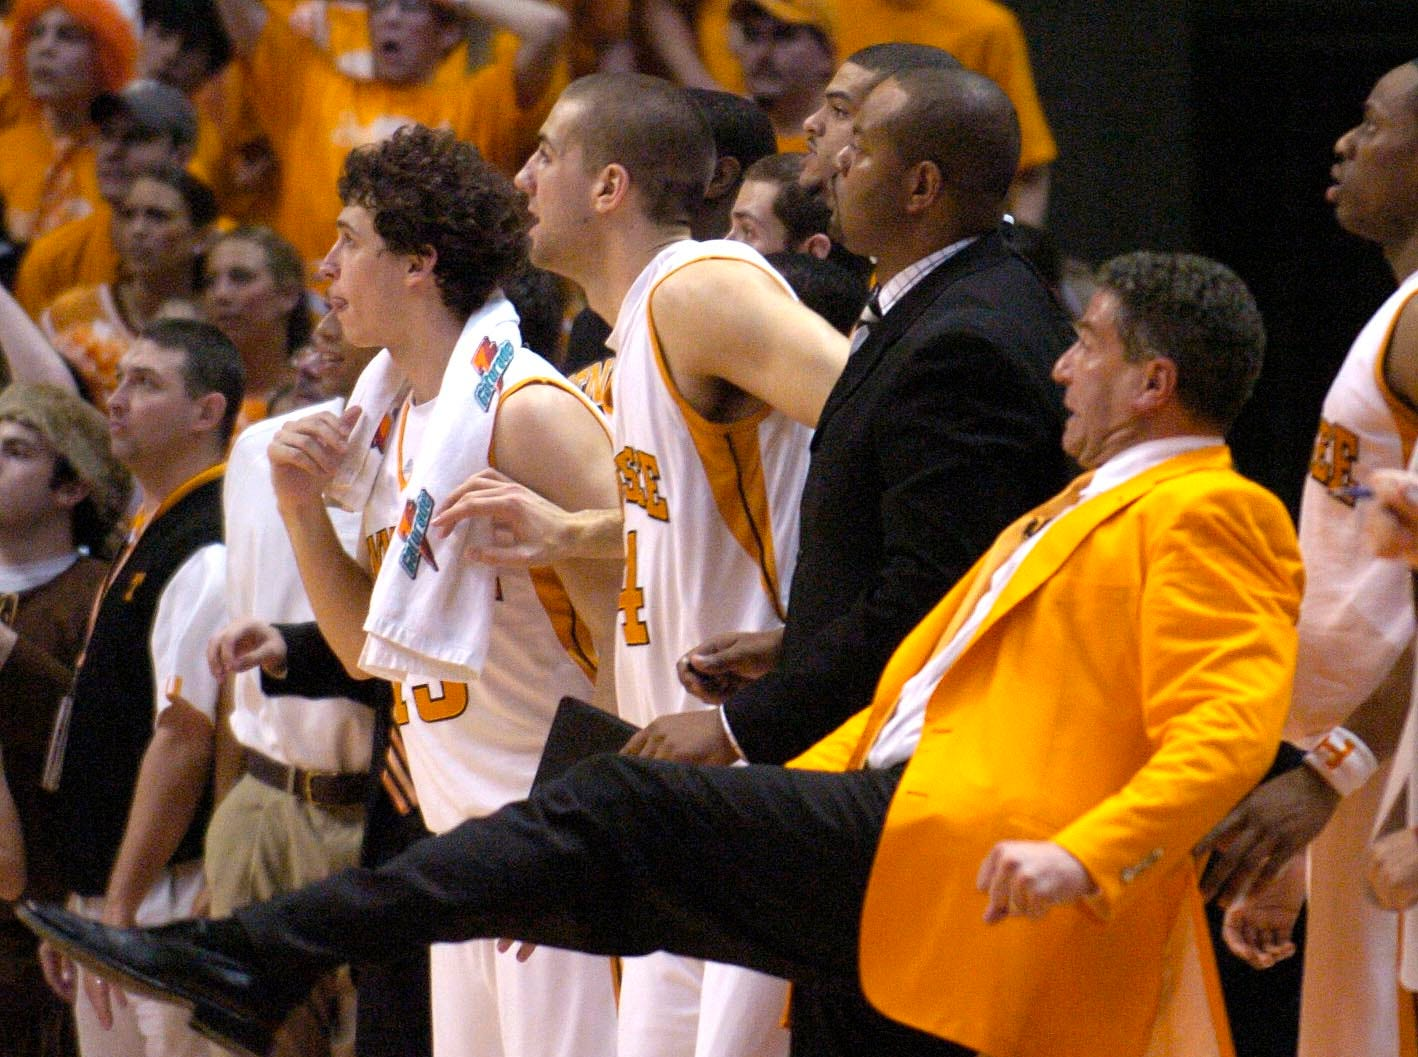 Tennessee head coach Bruce Pearl reacts as he watches the final shot of the game by senior C.J. Watson in February 2006. Watson missed which gave Kentucky a 80-78 win.